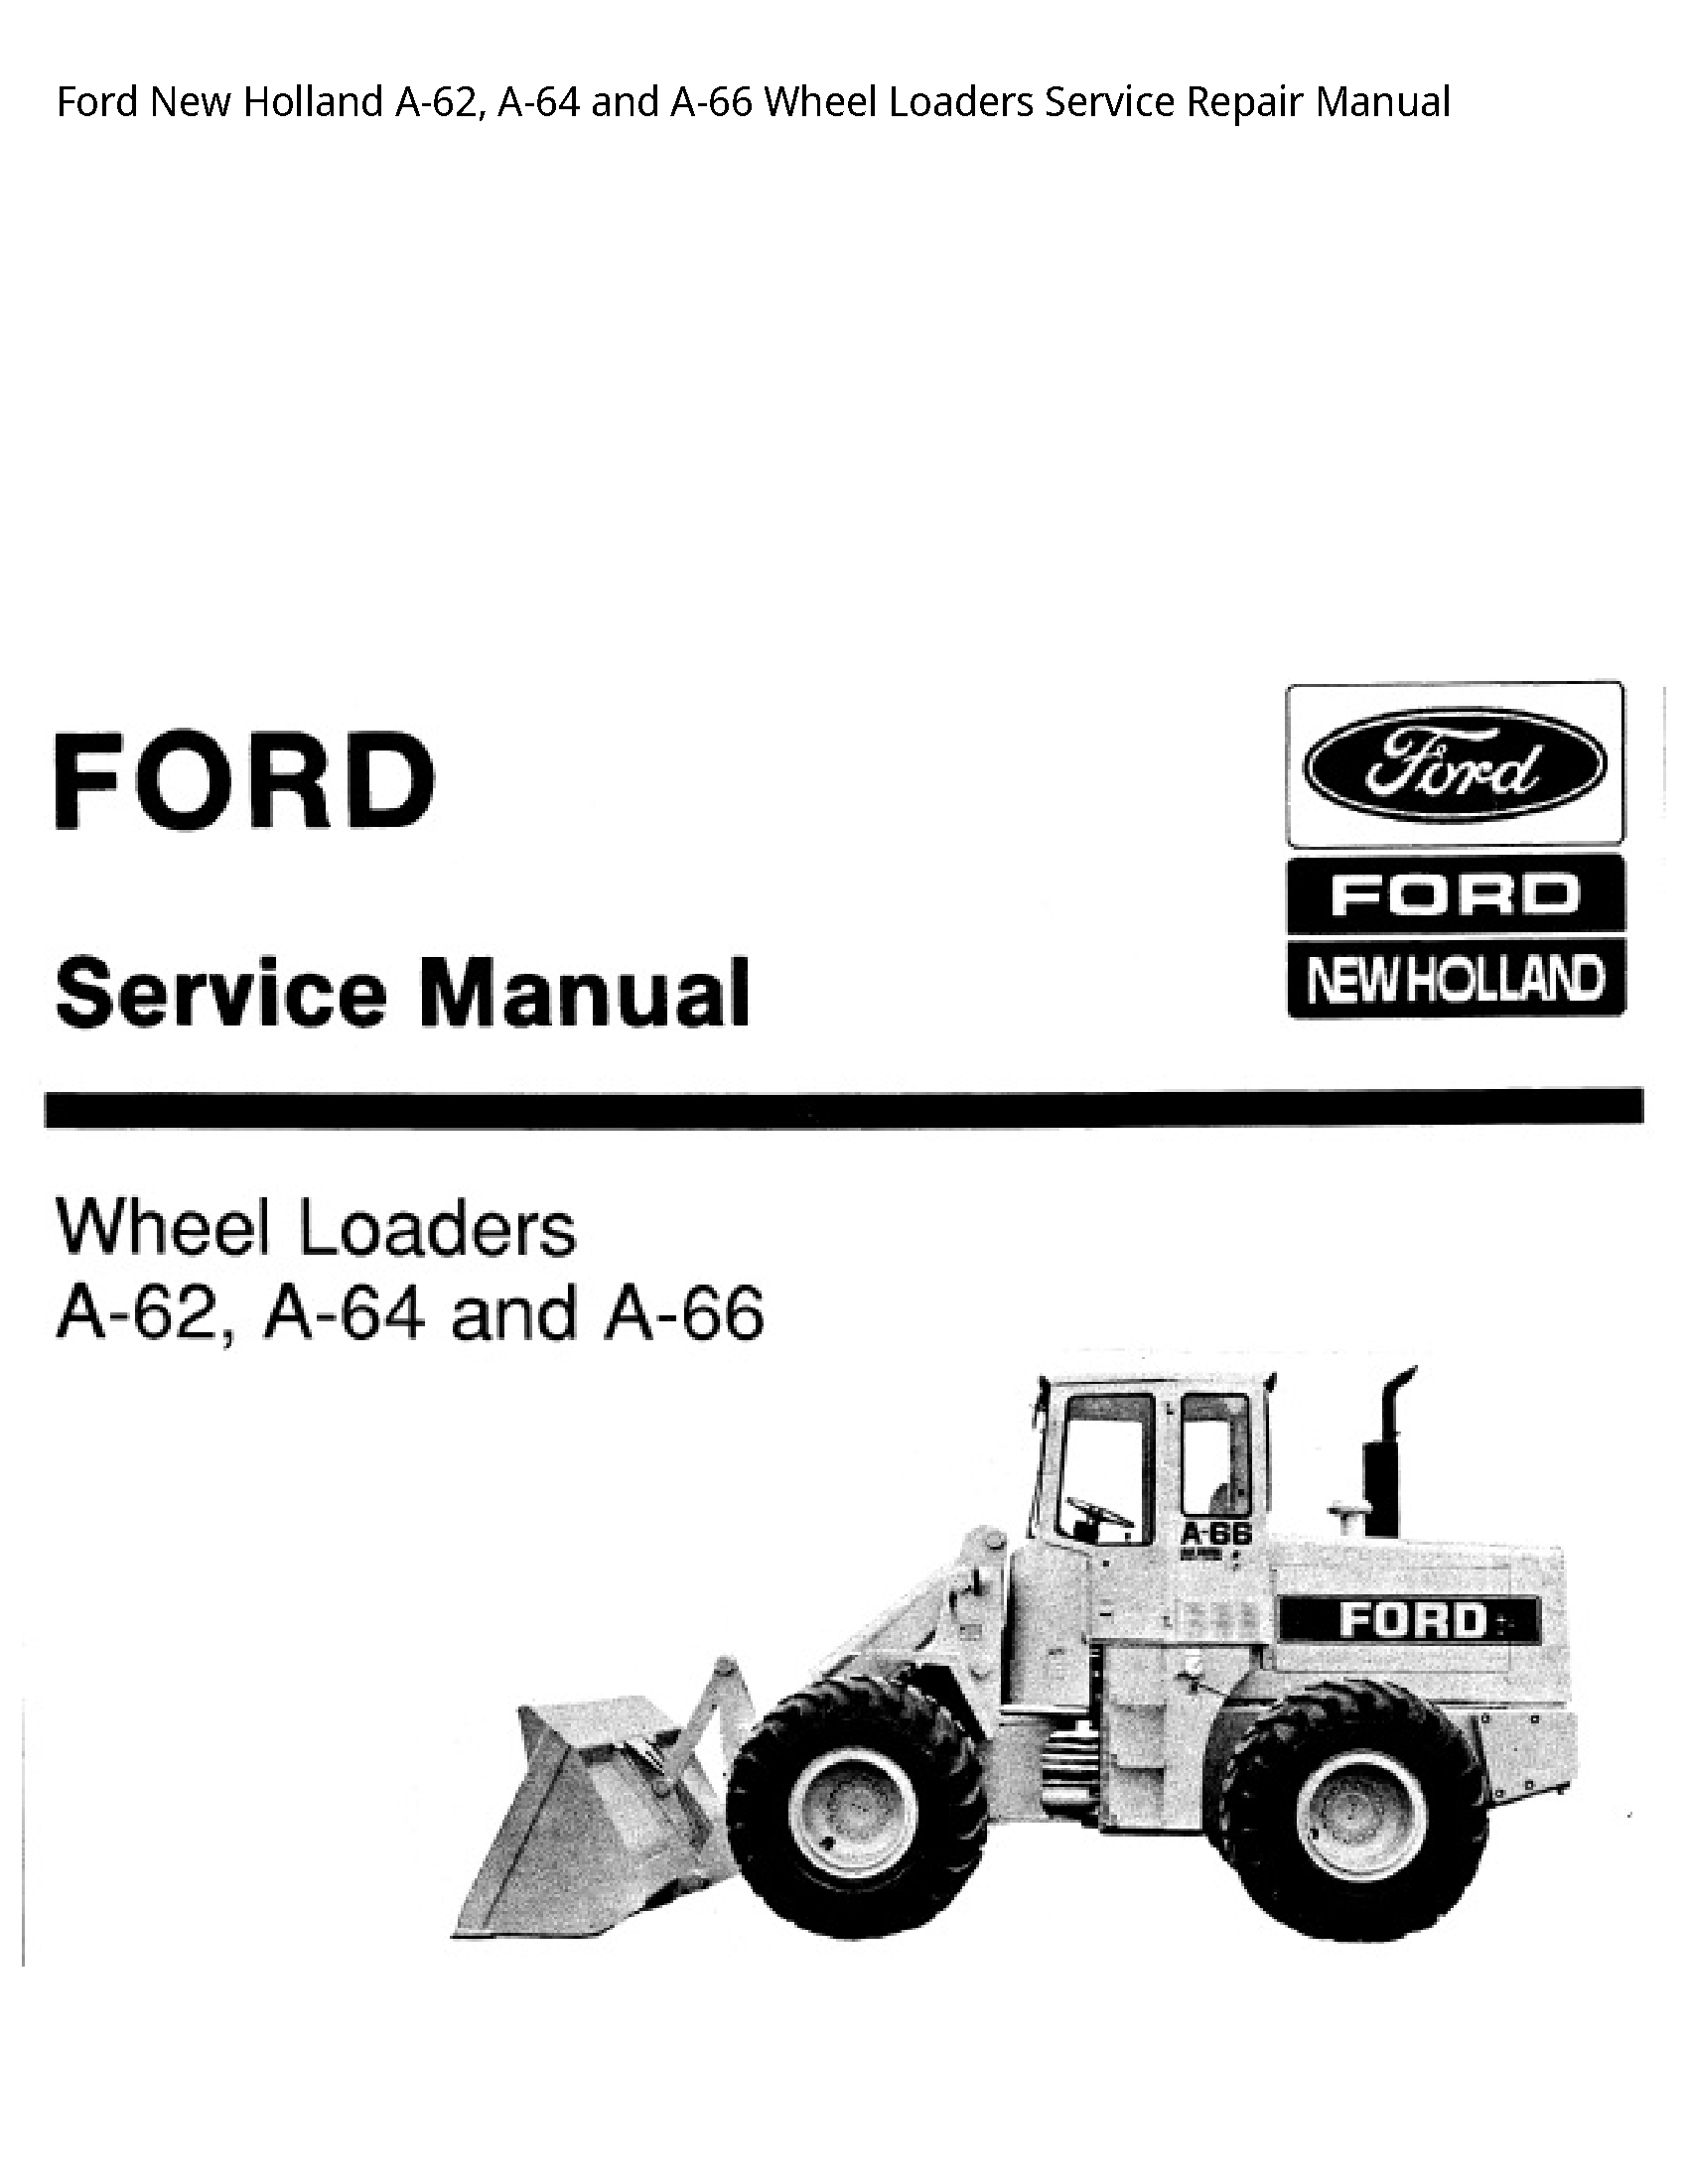 Ford New Holland A-62 A-64 and A-66 Wheel Loaders Service